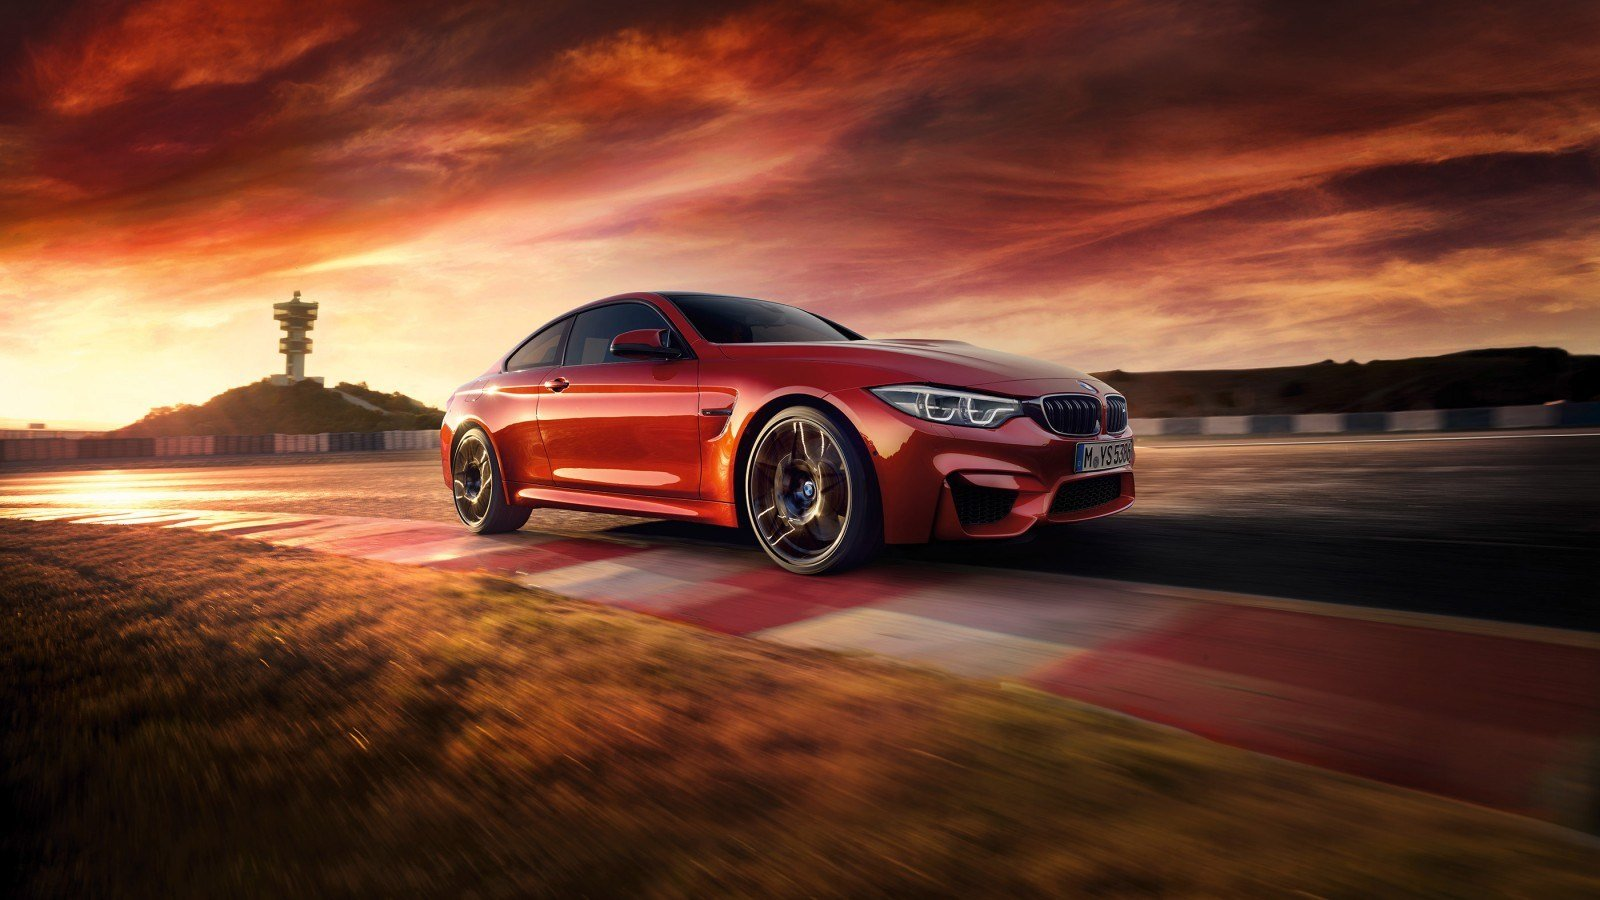 Latest Bmw M4 Coupe 2017 Wallpaper Hd Car Wallpapers Id 8087 Free Download